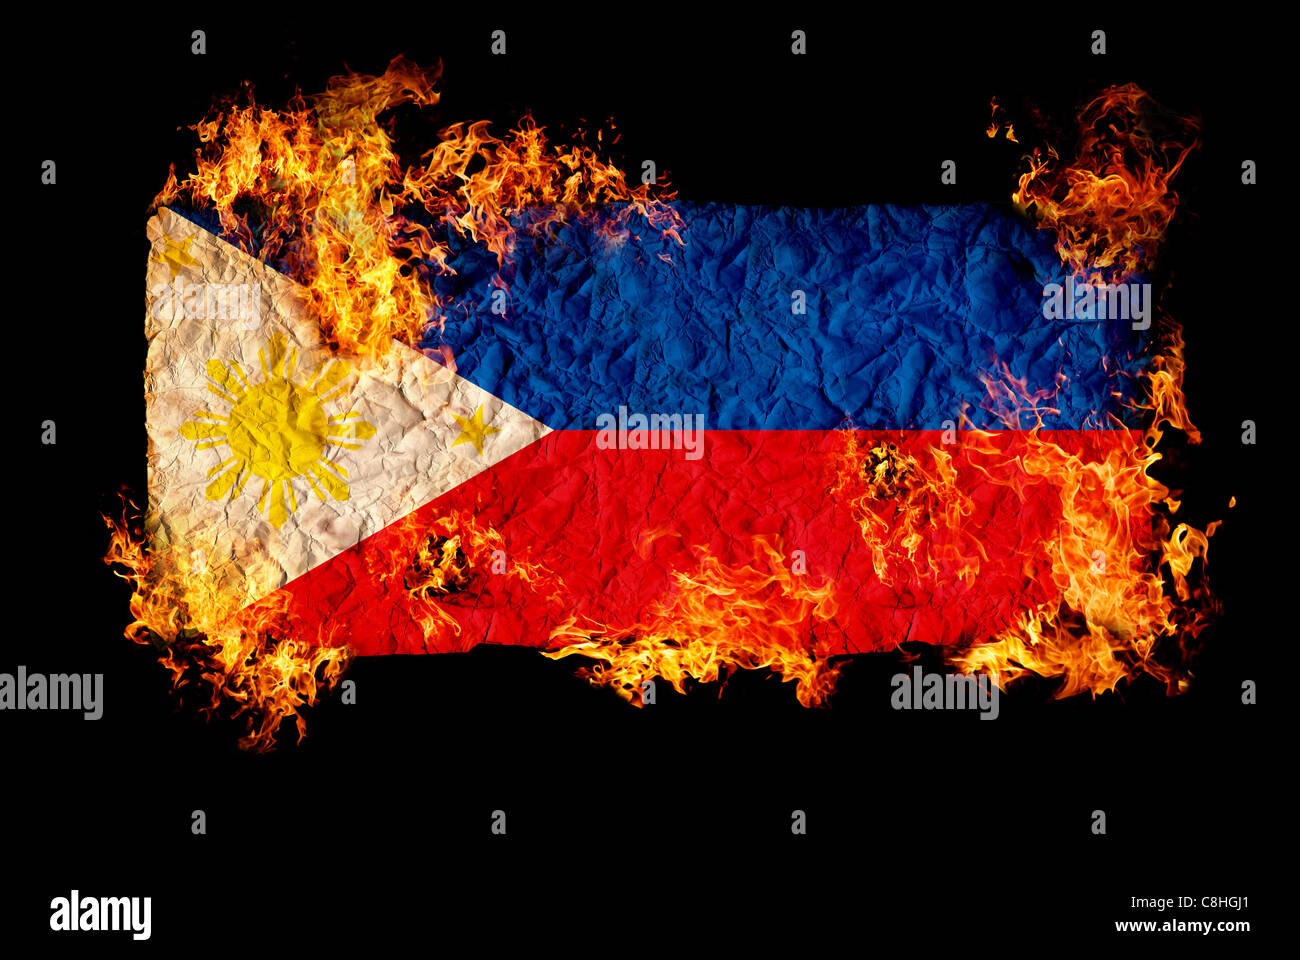 National symbols and flag of philippines stock photo 39724217 alamy national symbols and flag of philippines biocorpaavc Choice Image